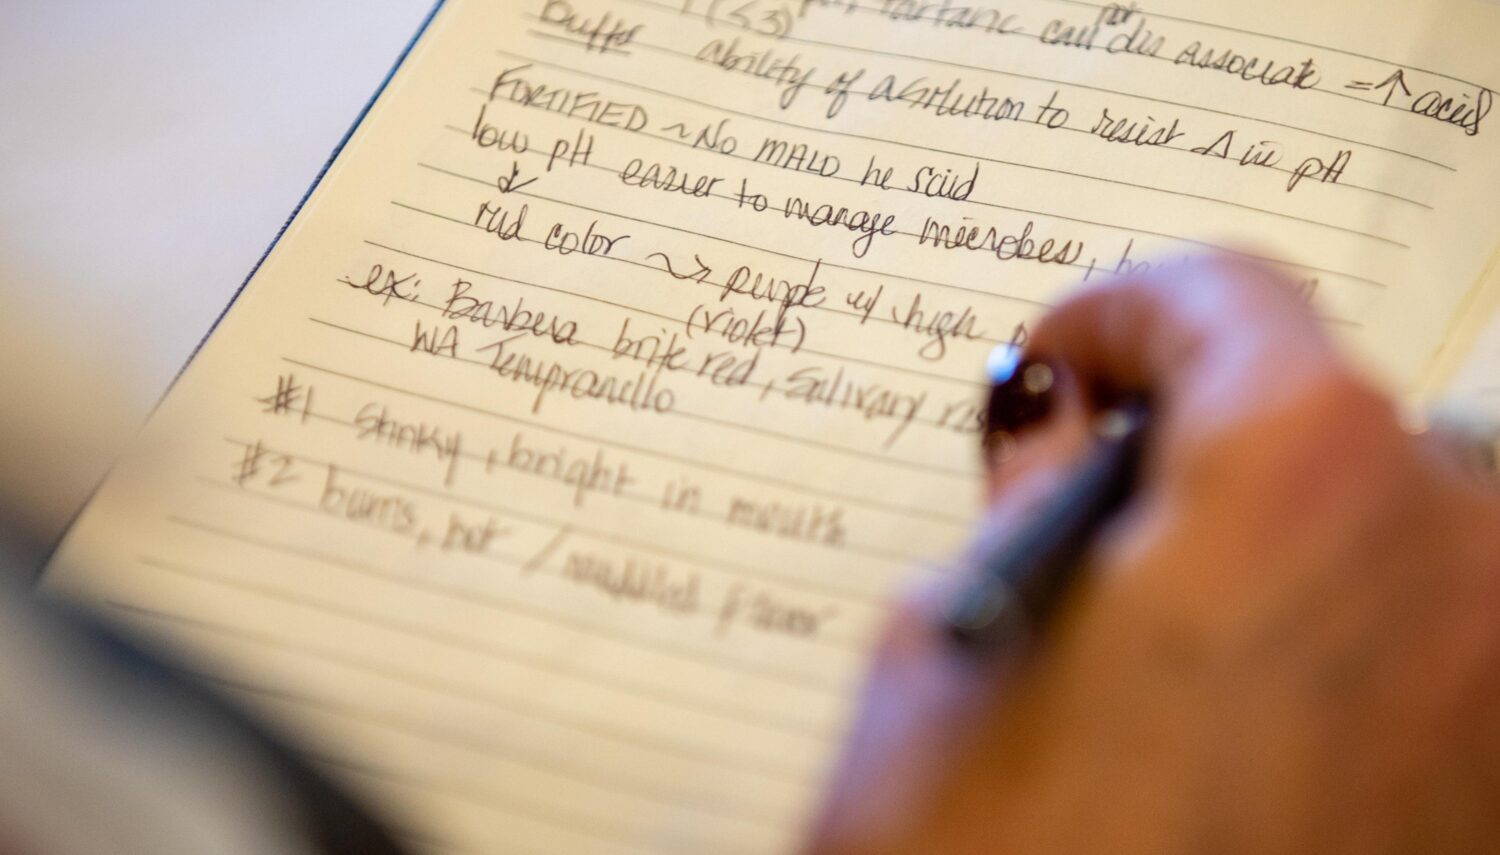 A hand holding a pen rests above a page with hand-written notes.